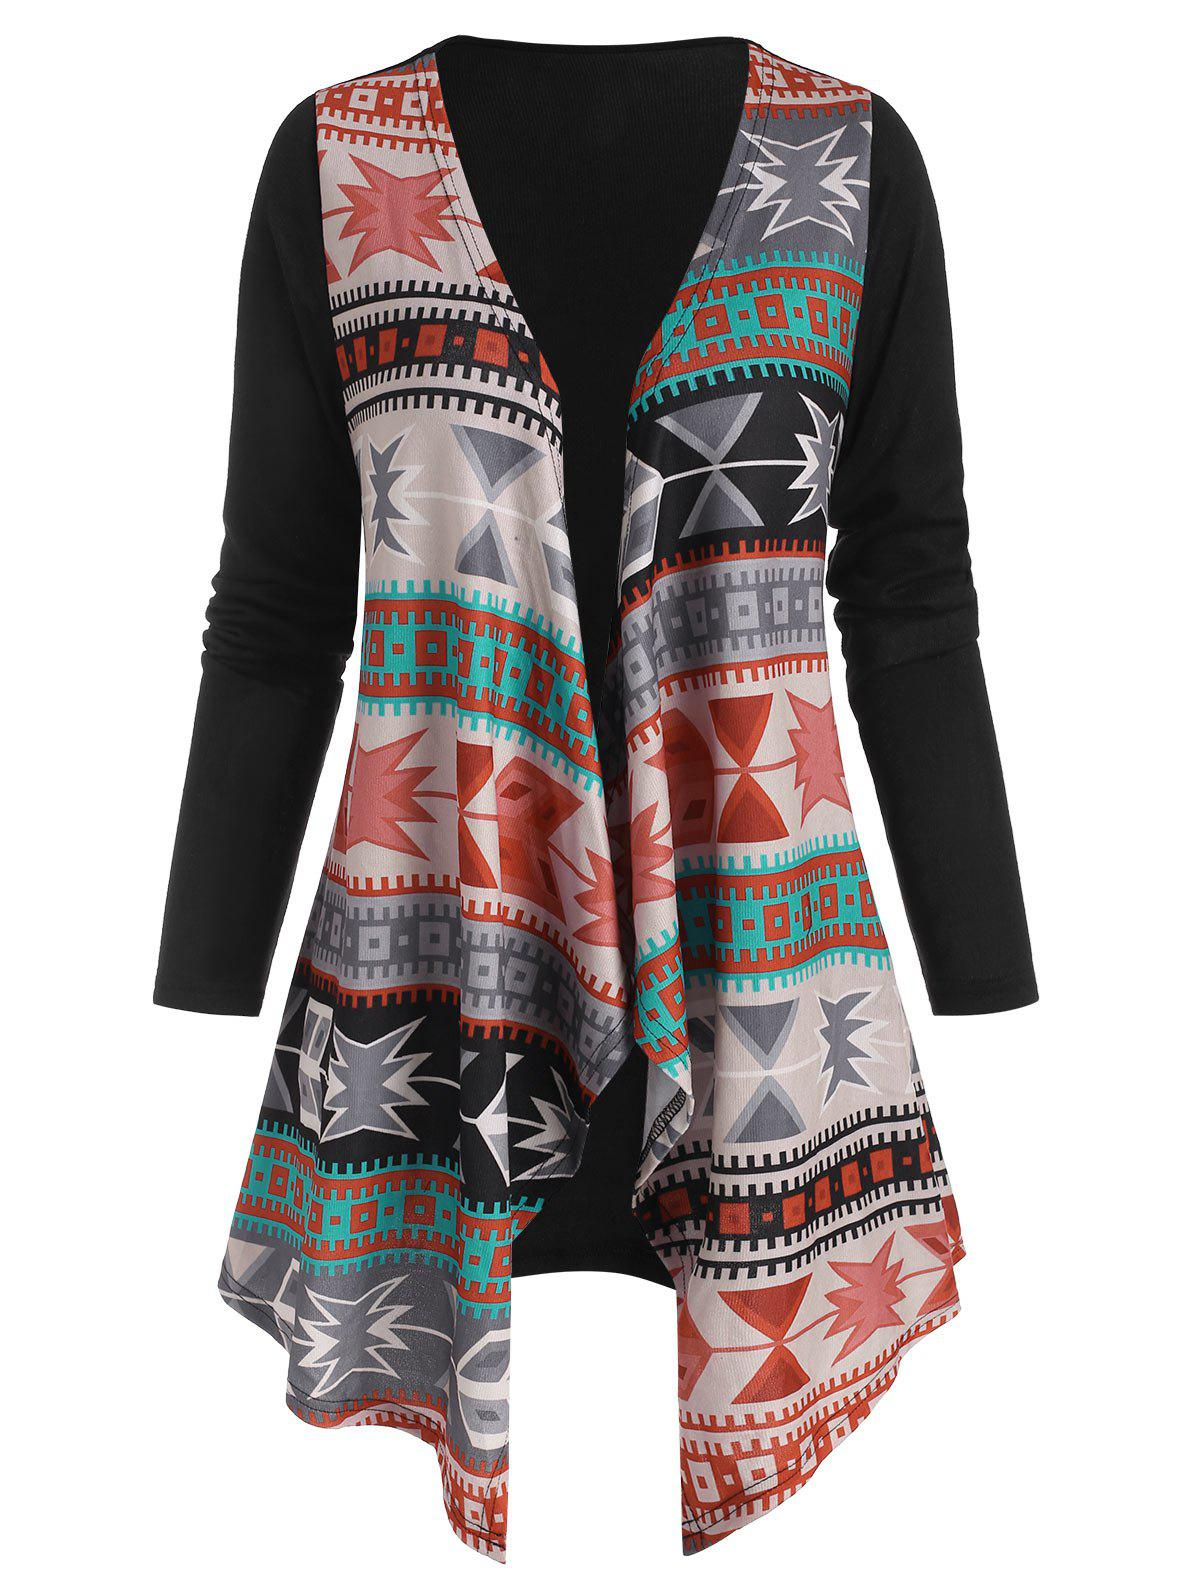 Tribal Waterfall Collar Open Front Cardigan - multicolor S